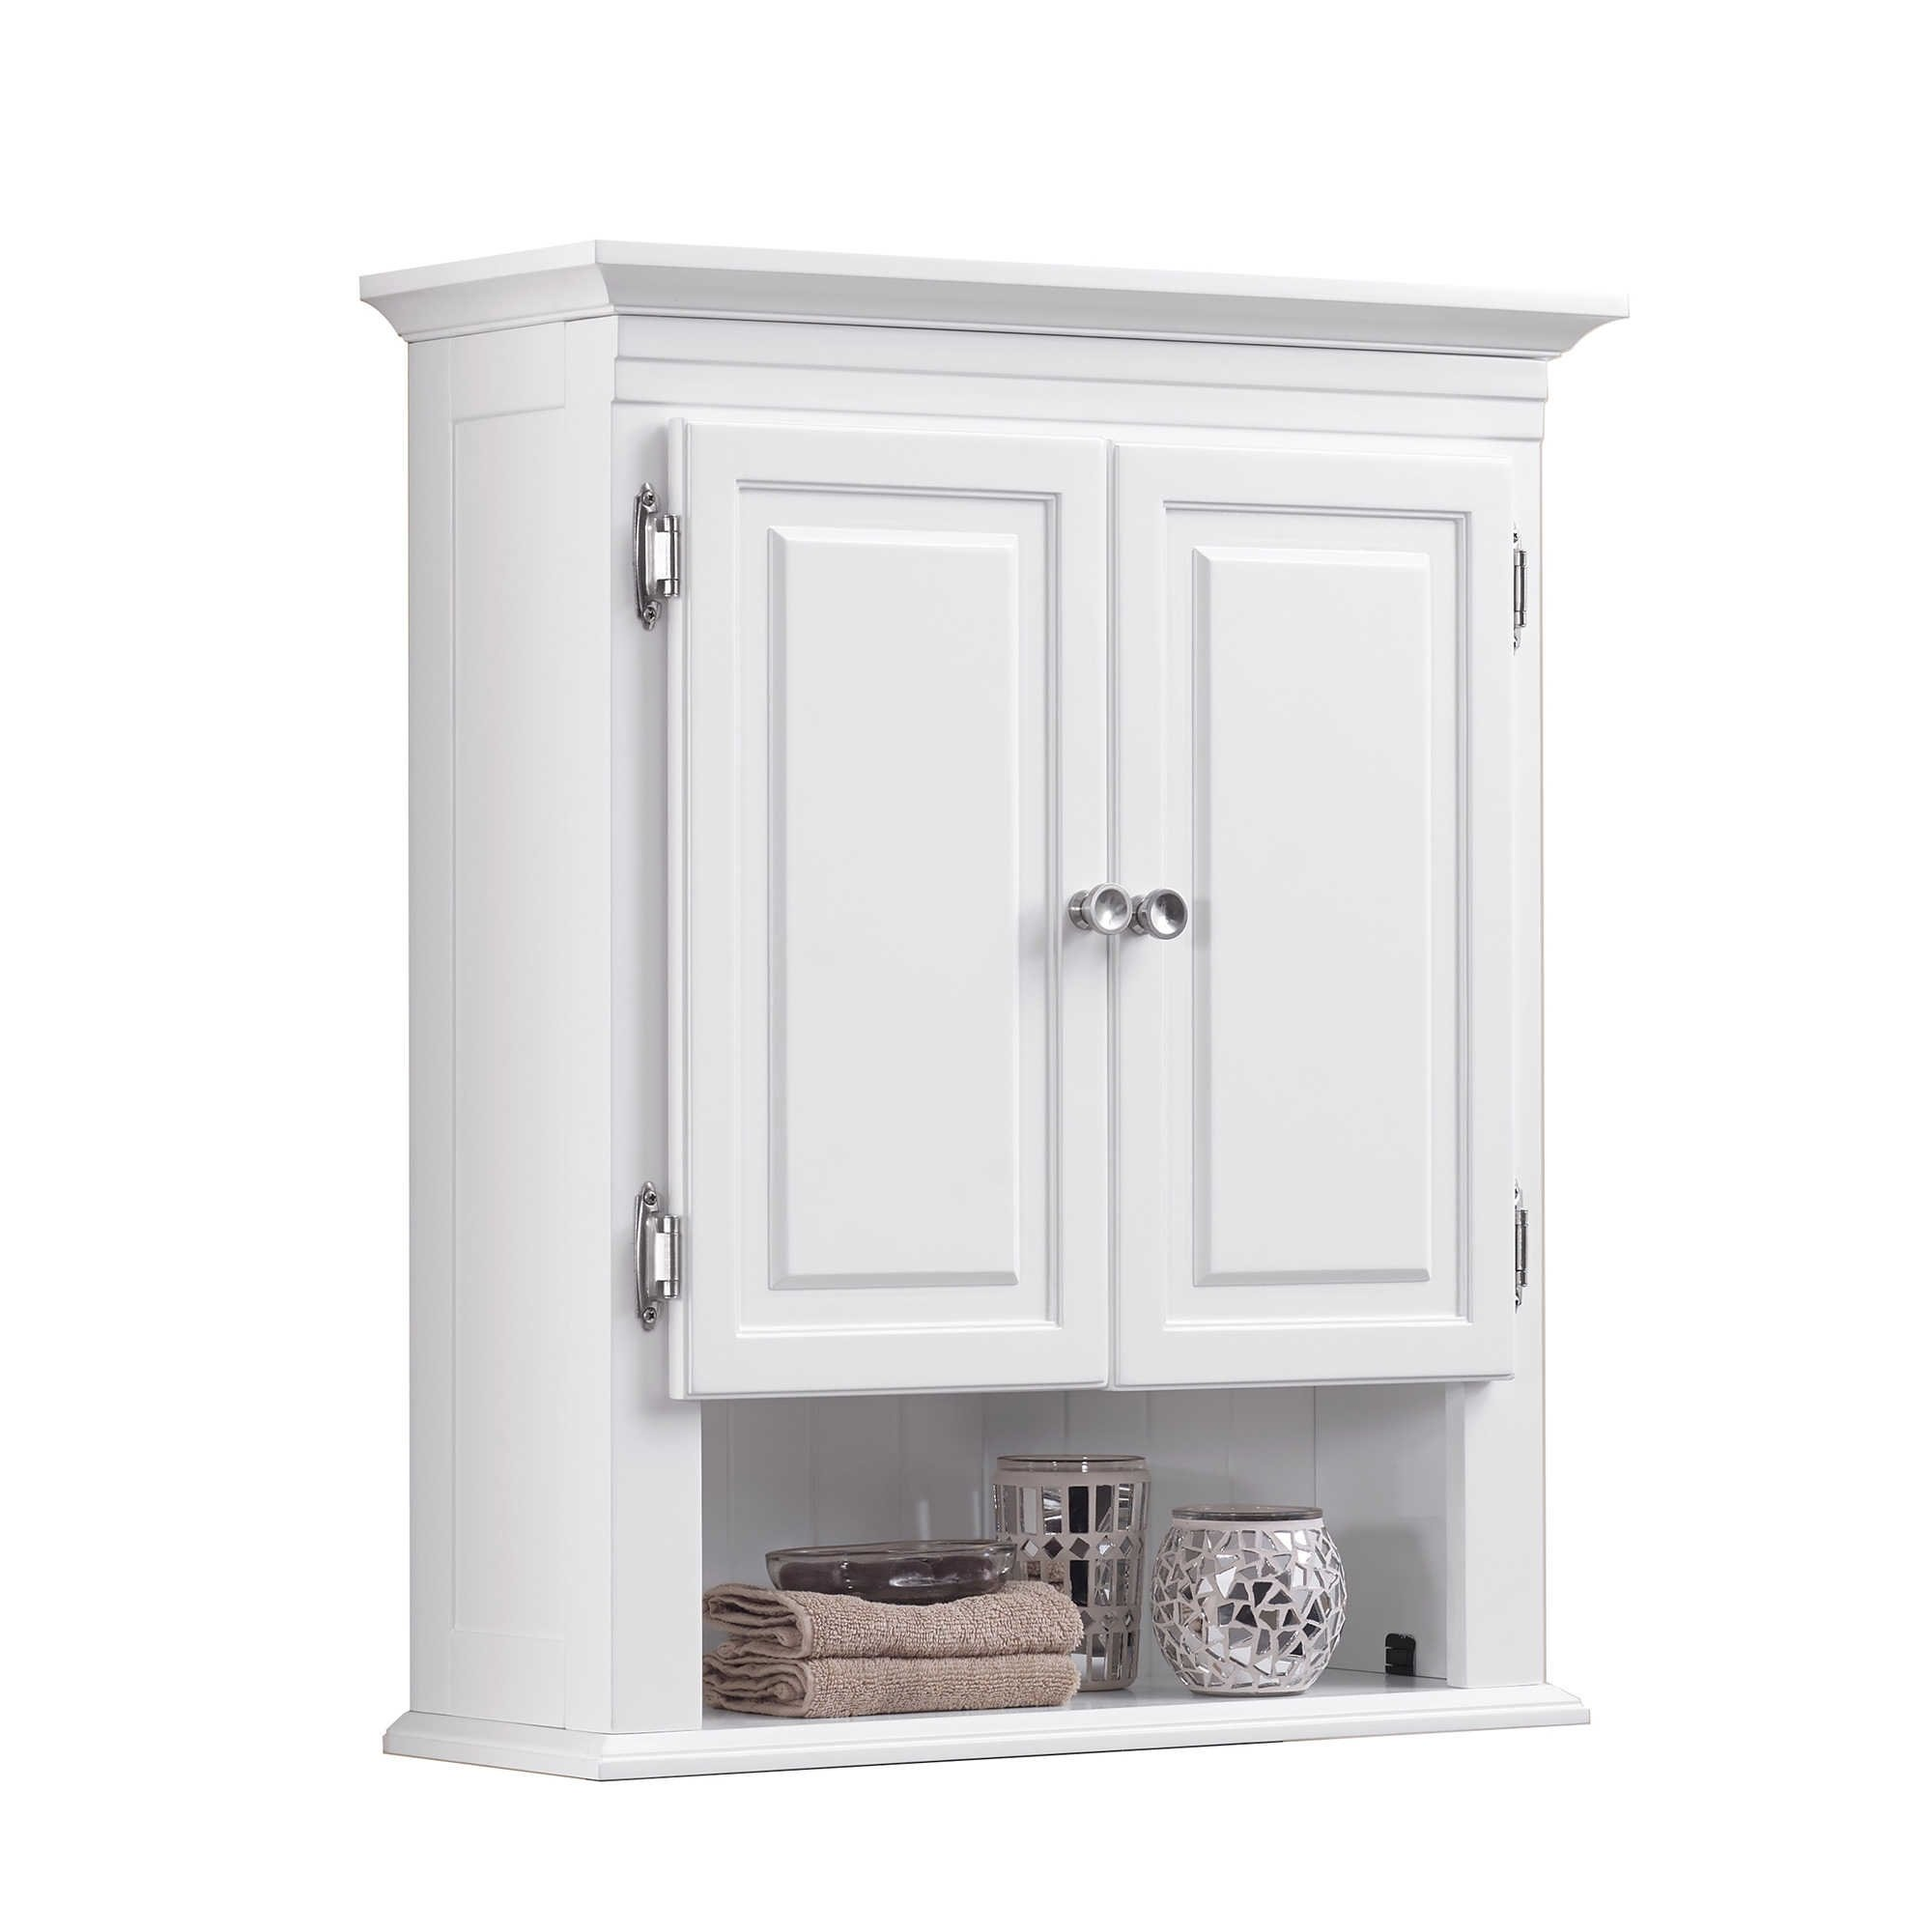 Wakefield 3-Shelf with 2-Doors Bathroom Wall Mount Cabinet in White